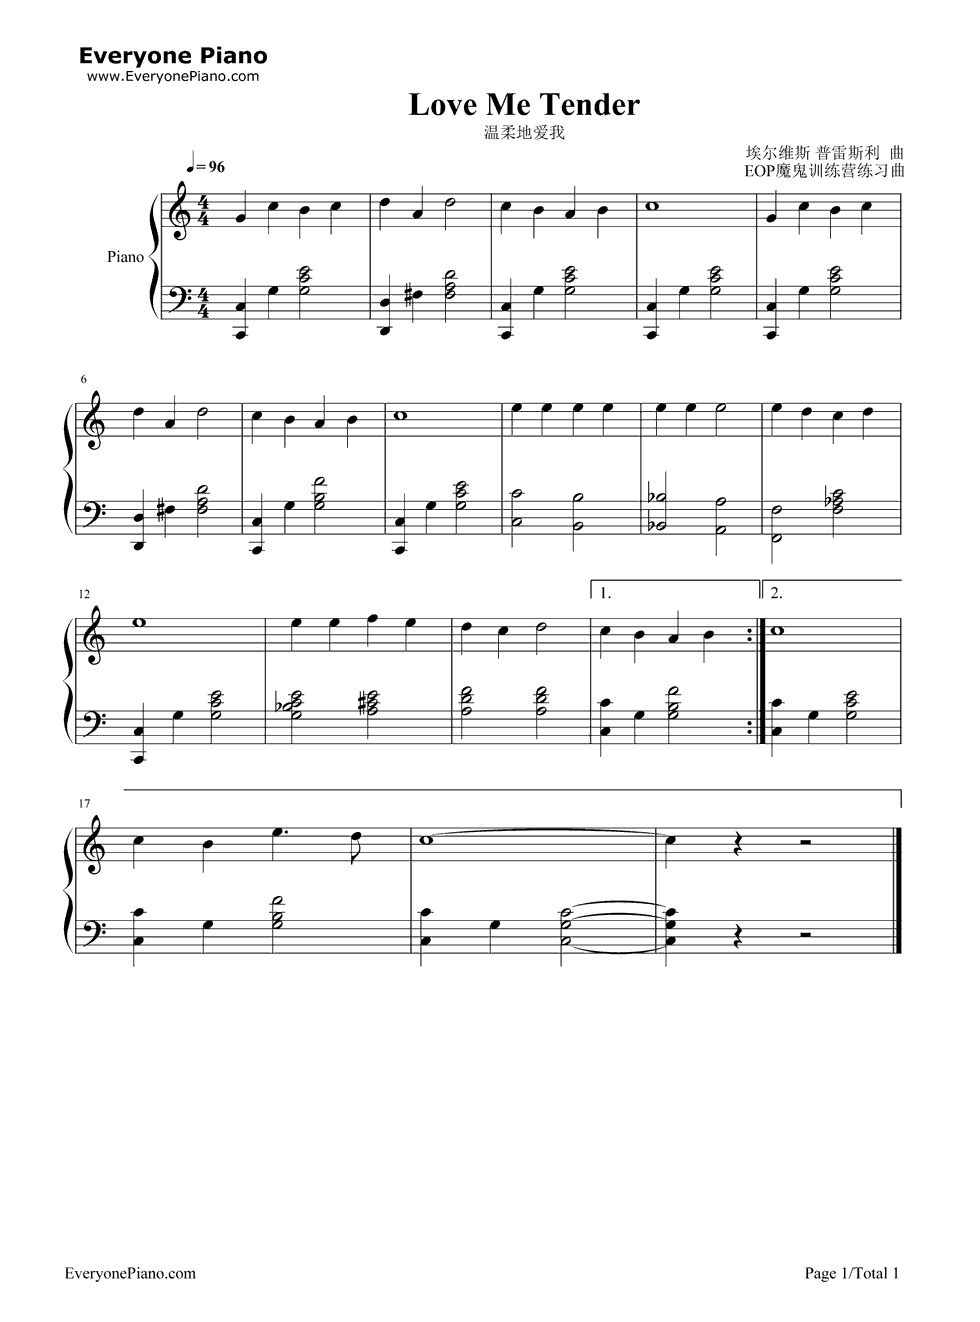 Love me tender stave preview 1 free piano sheet music piano love me tender stave preview 1 free piano sheet music piano chords hexwebz Gallery